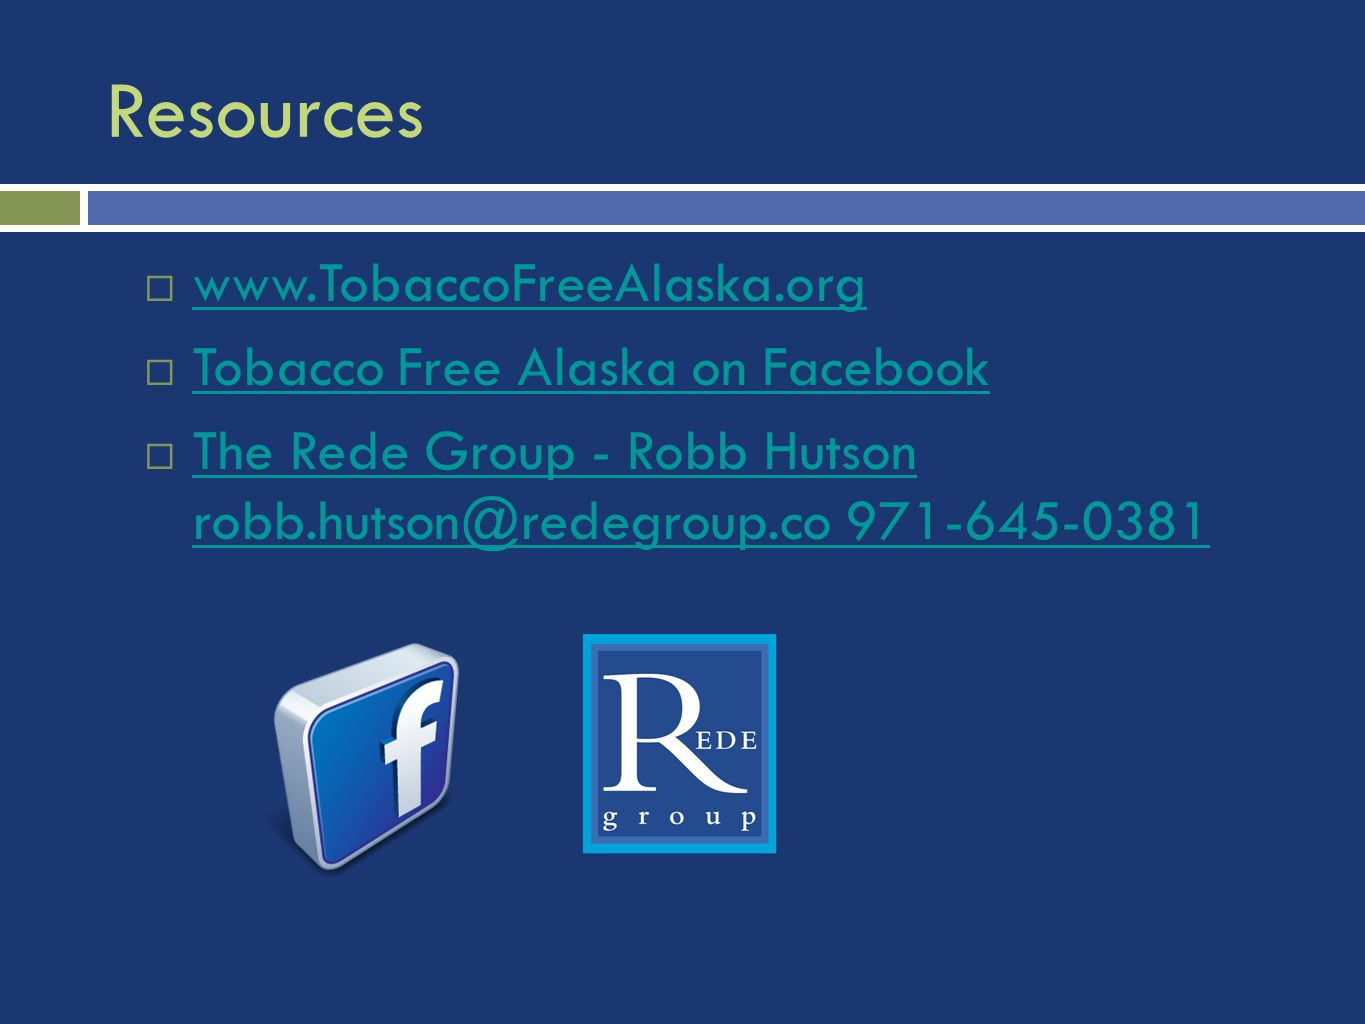 Resources www.TobaccoFreeAlaska.org Tobacco Free Alaska on Facebook The Rede Group - Robb Hutson robb.hutson@redegroup.co 971-645-0381 The Rede Group